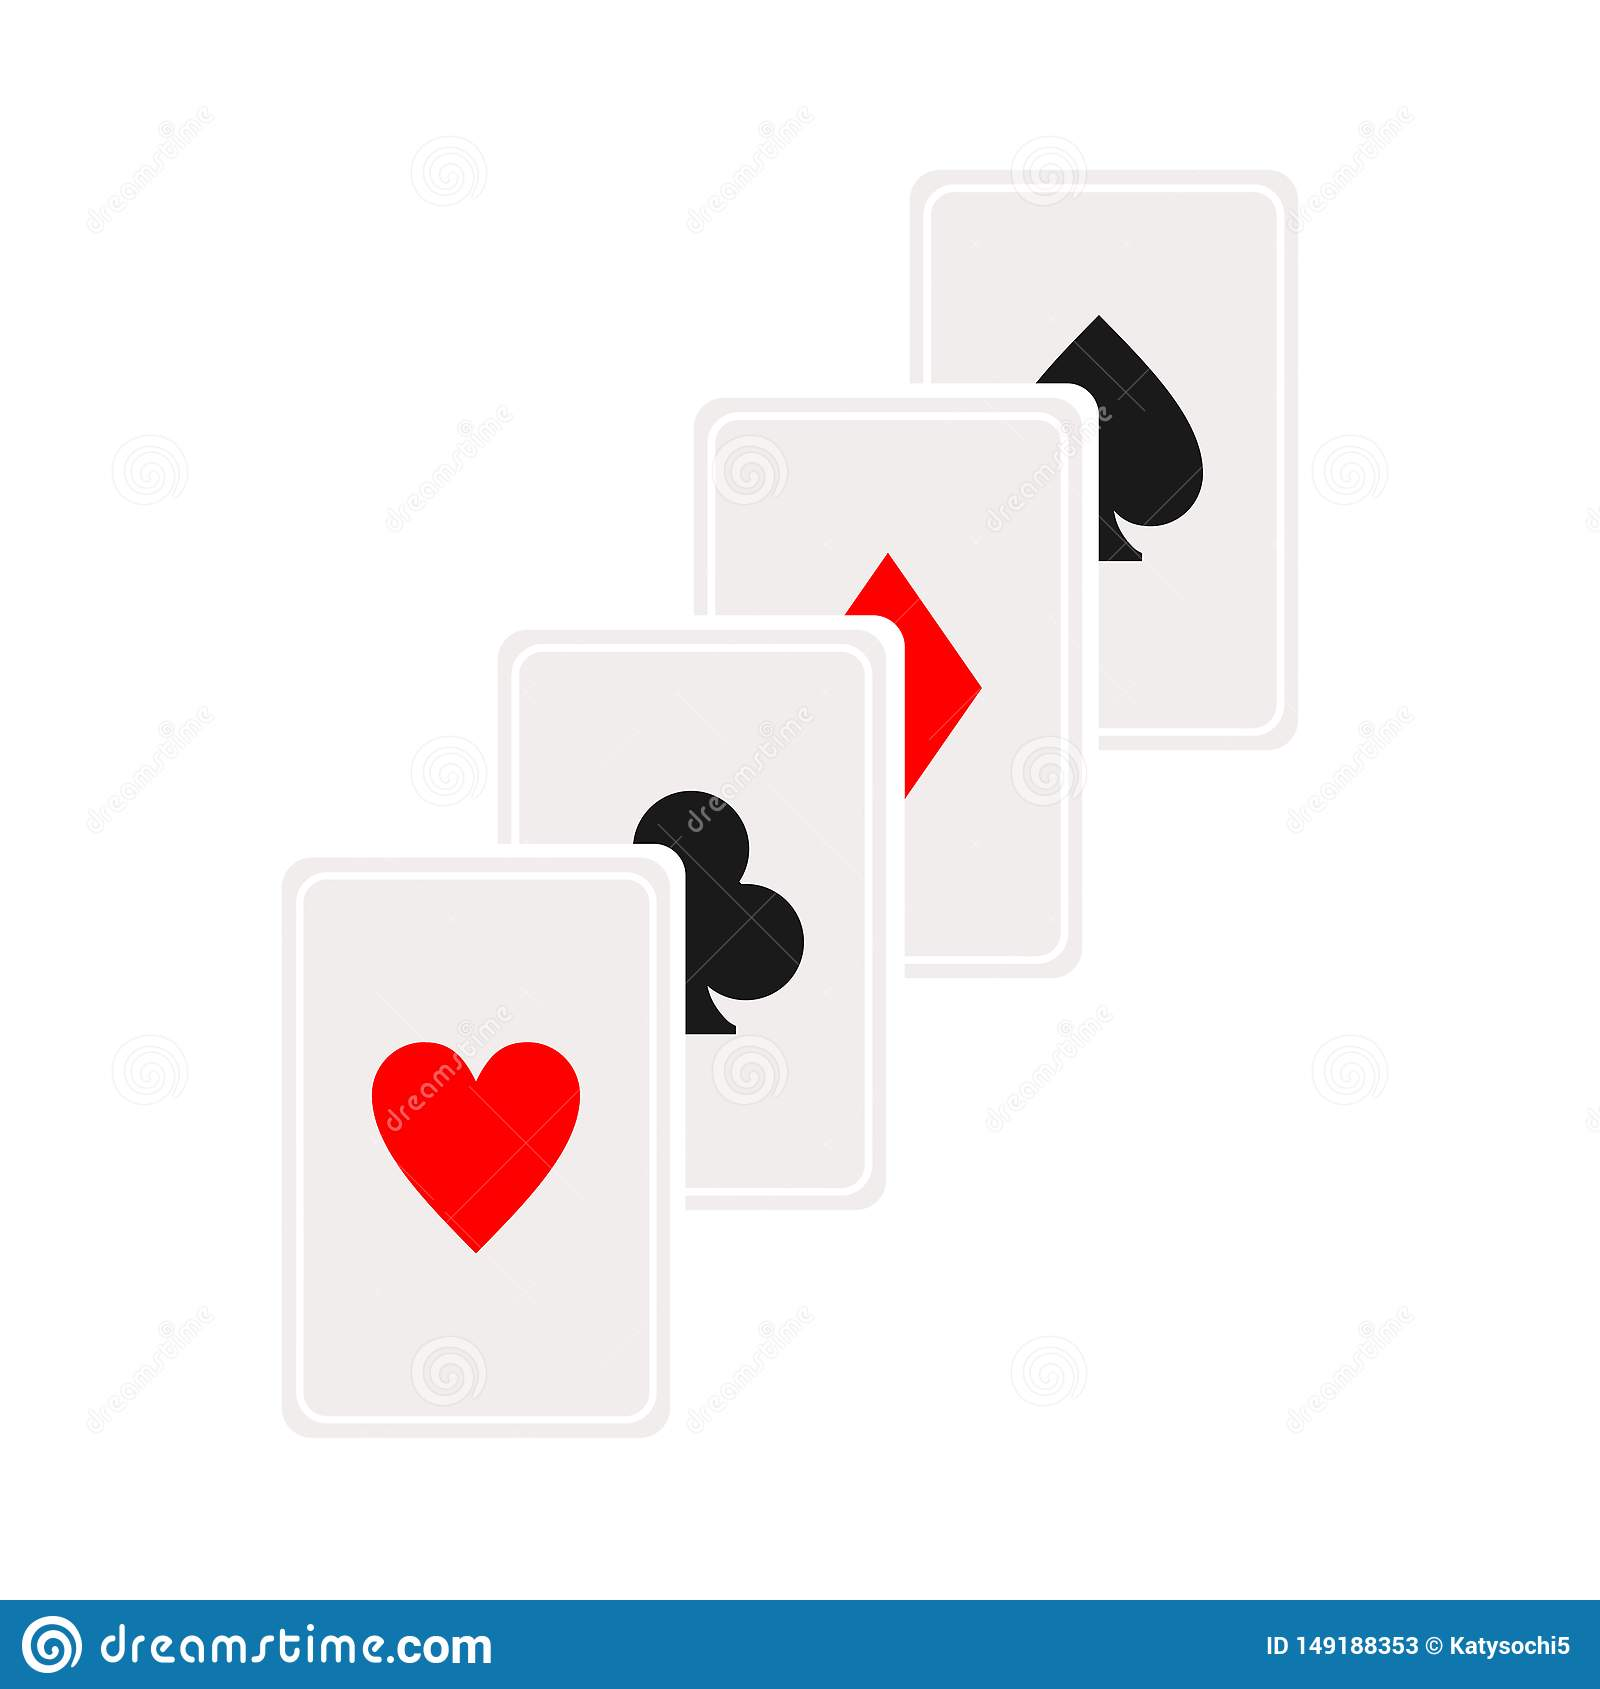 Cascade card icon. Playing card symbol, logo illustration. Vector isolate on white background.Casino sign. Gambling